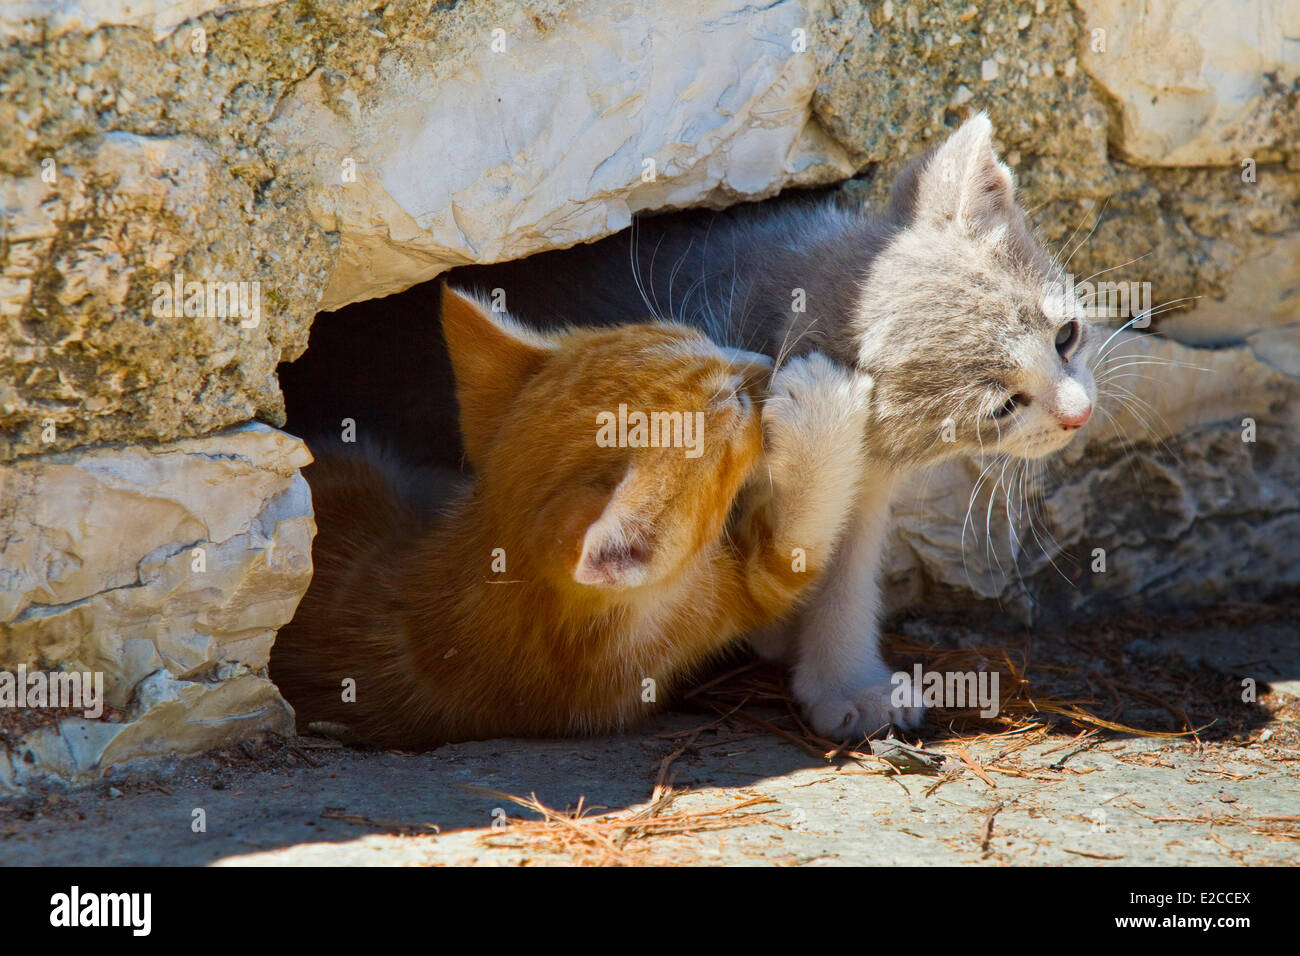 Greece, Thessaly, Meteora monasteries complex, listed as World Heritage by UNESCO, kittens - Stock Image